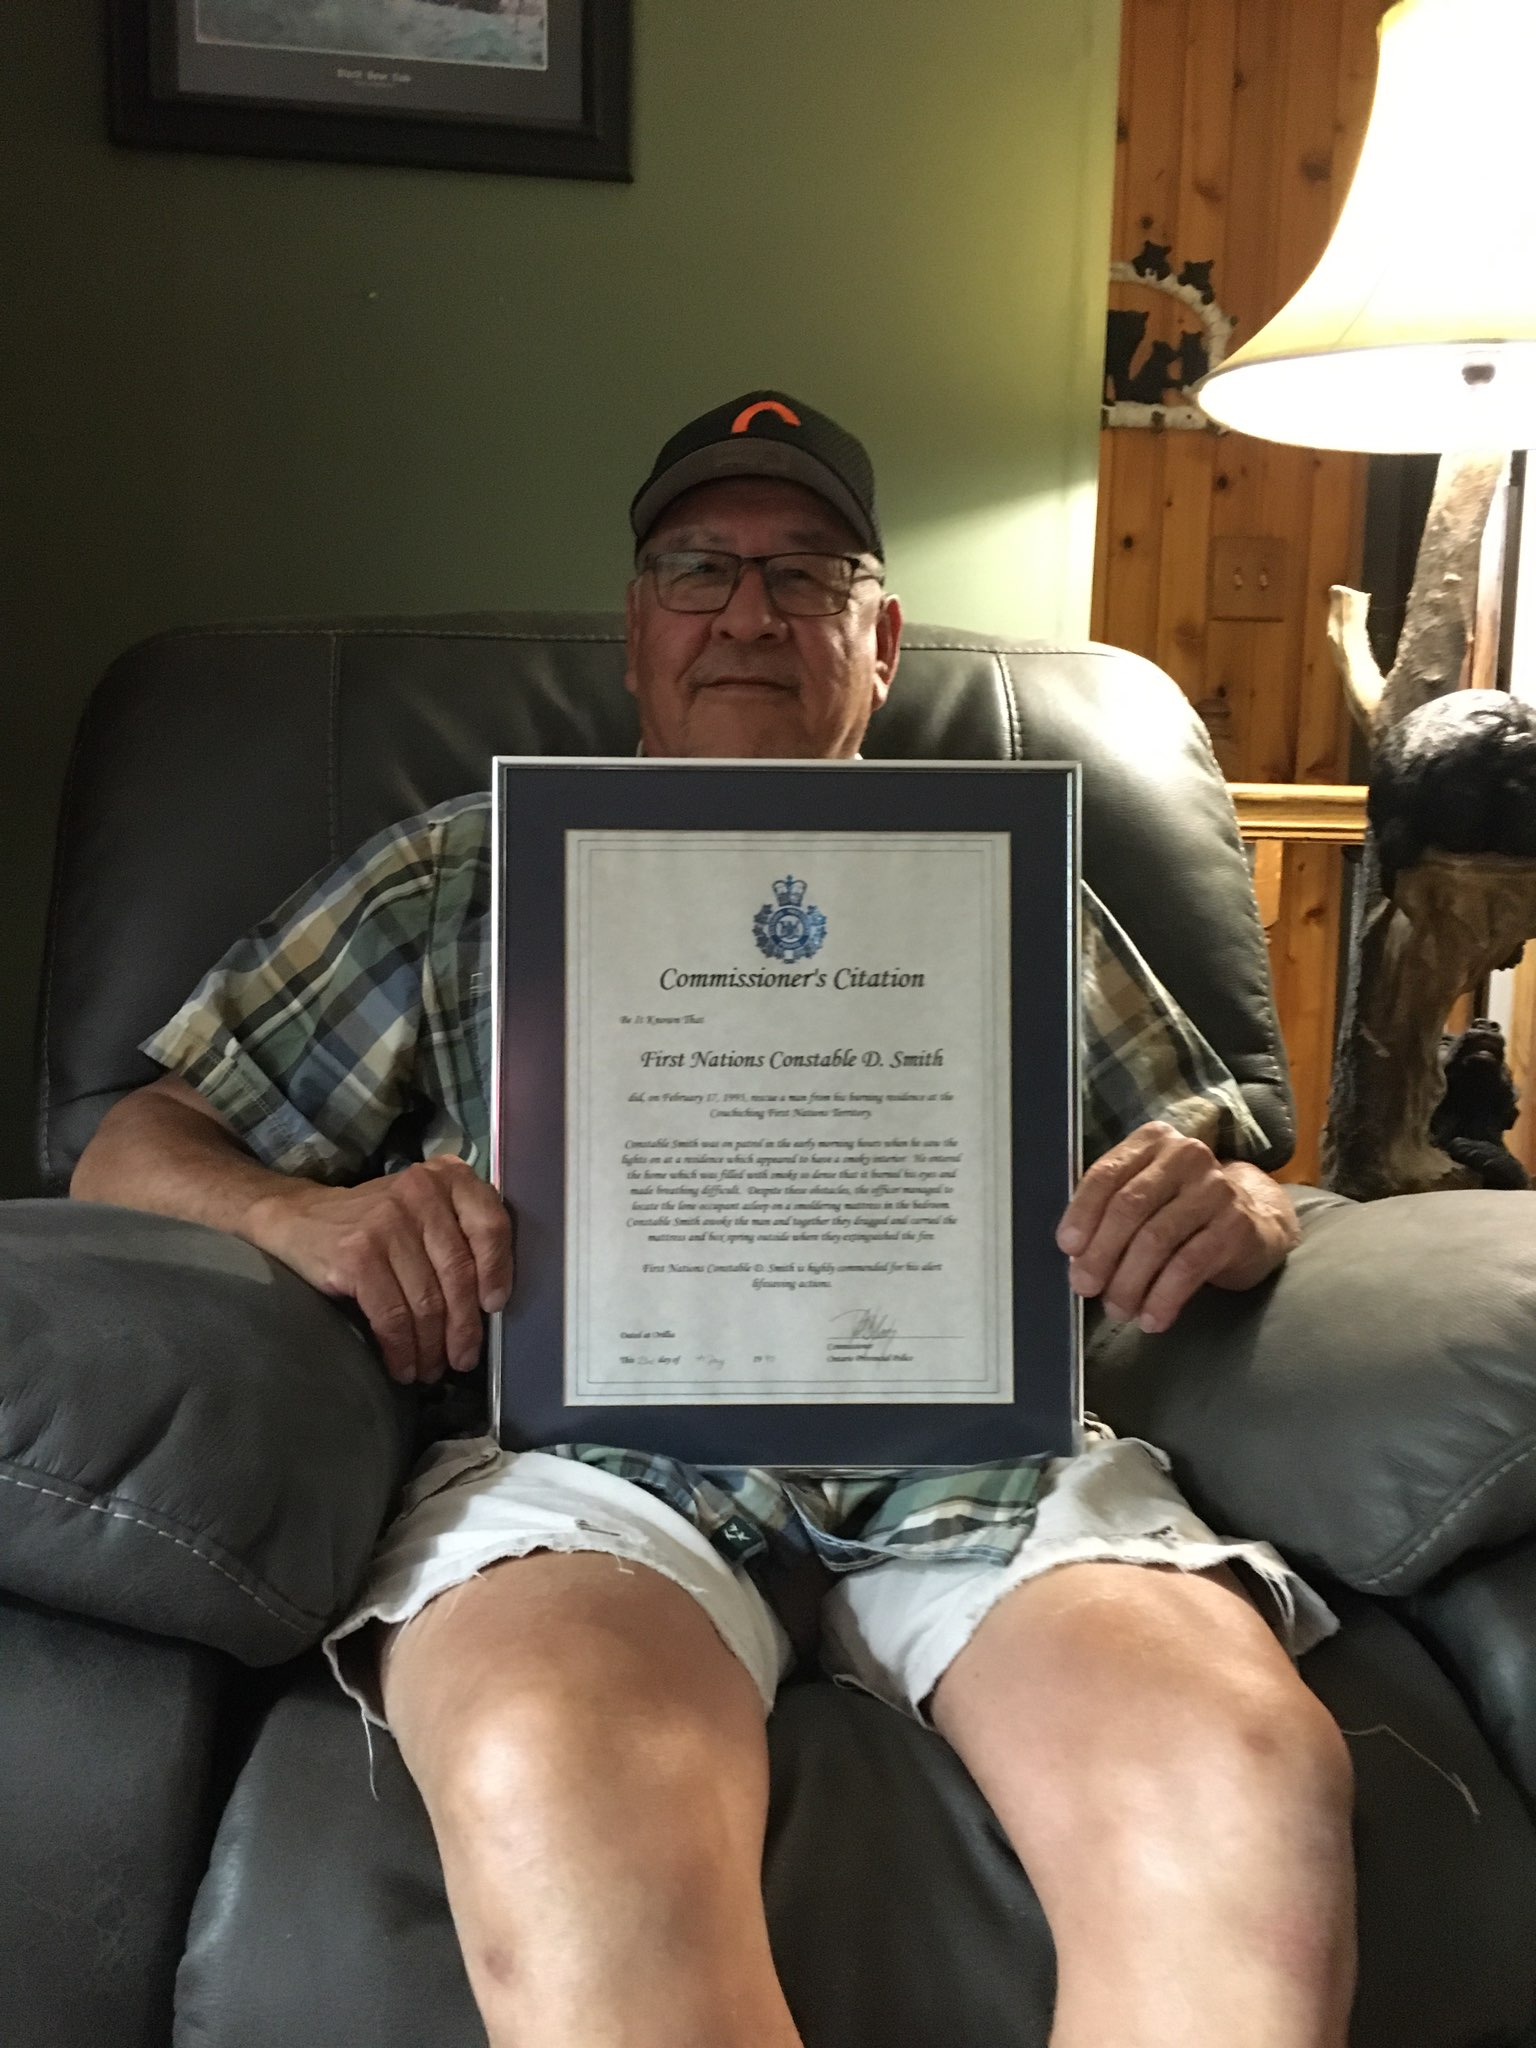 Dennis Smith retires after decades of service